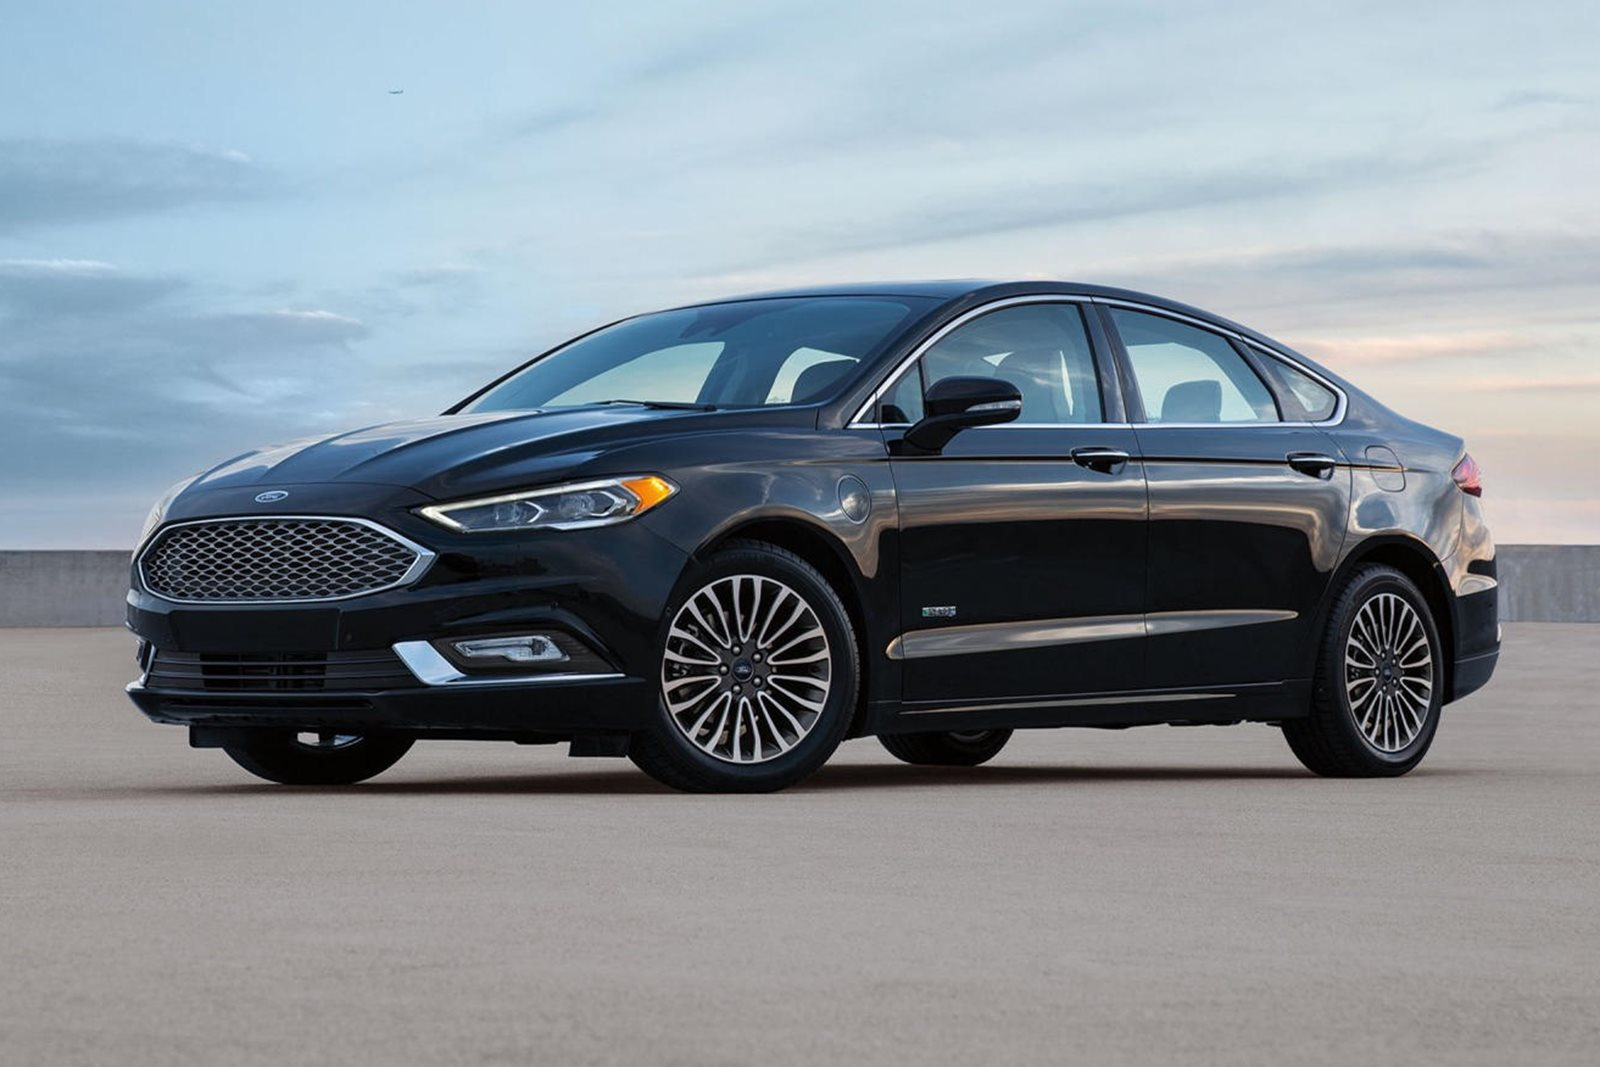 Ford Fusion: Starting the engine